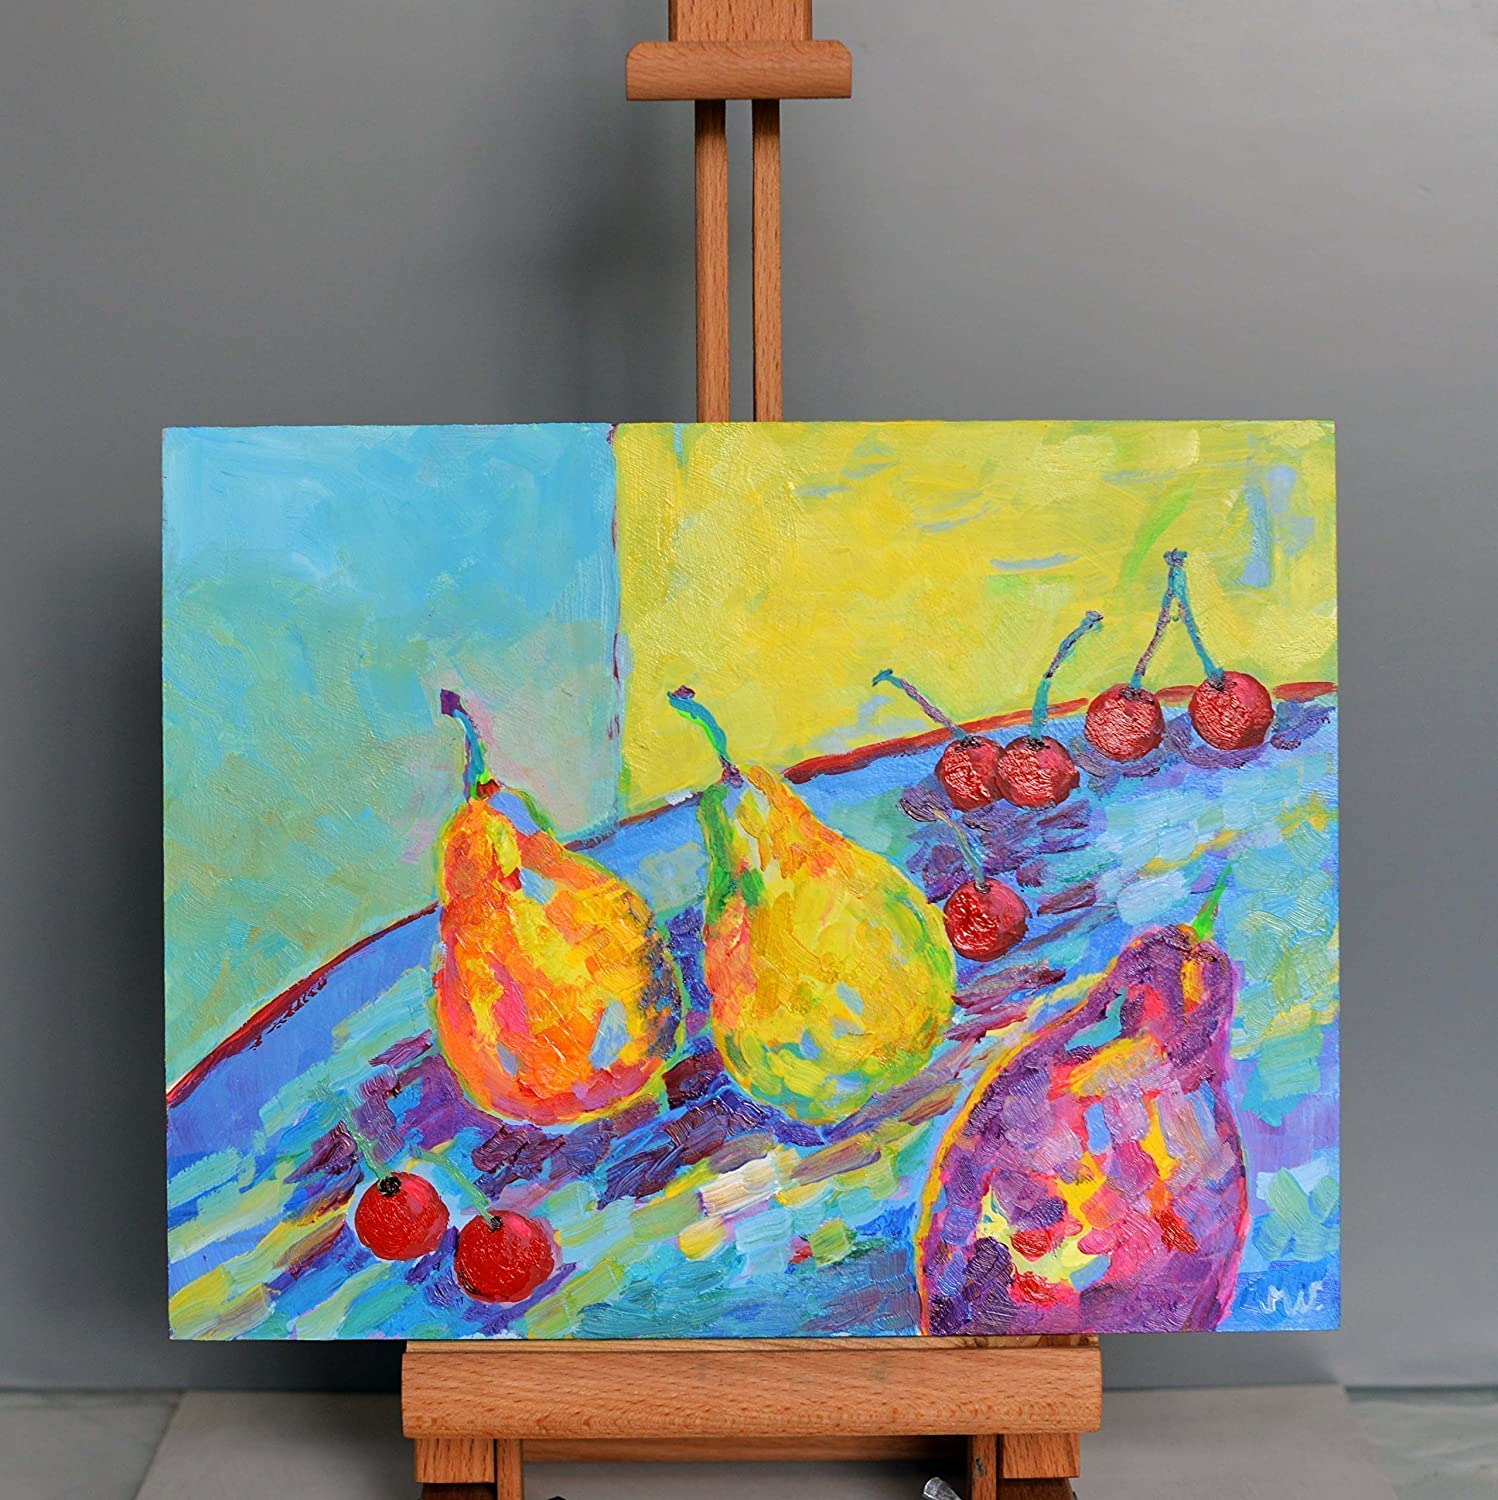 Amazon.com: Funny Kitchen Wall Art Still Life Food Painting Fruit ...